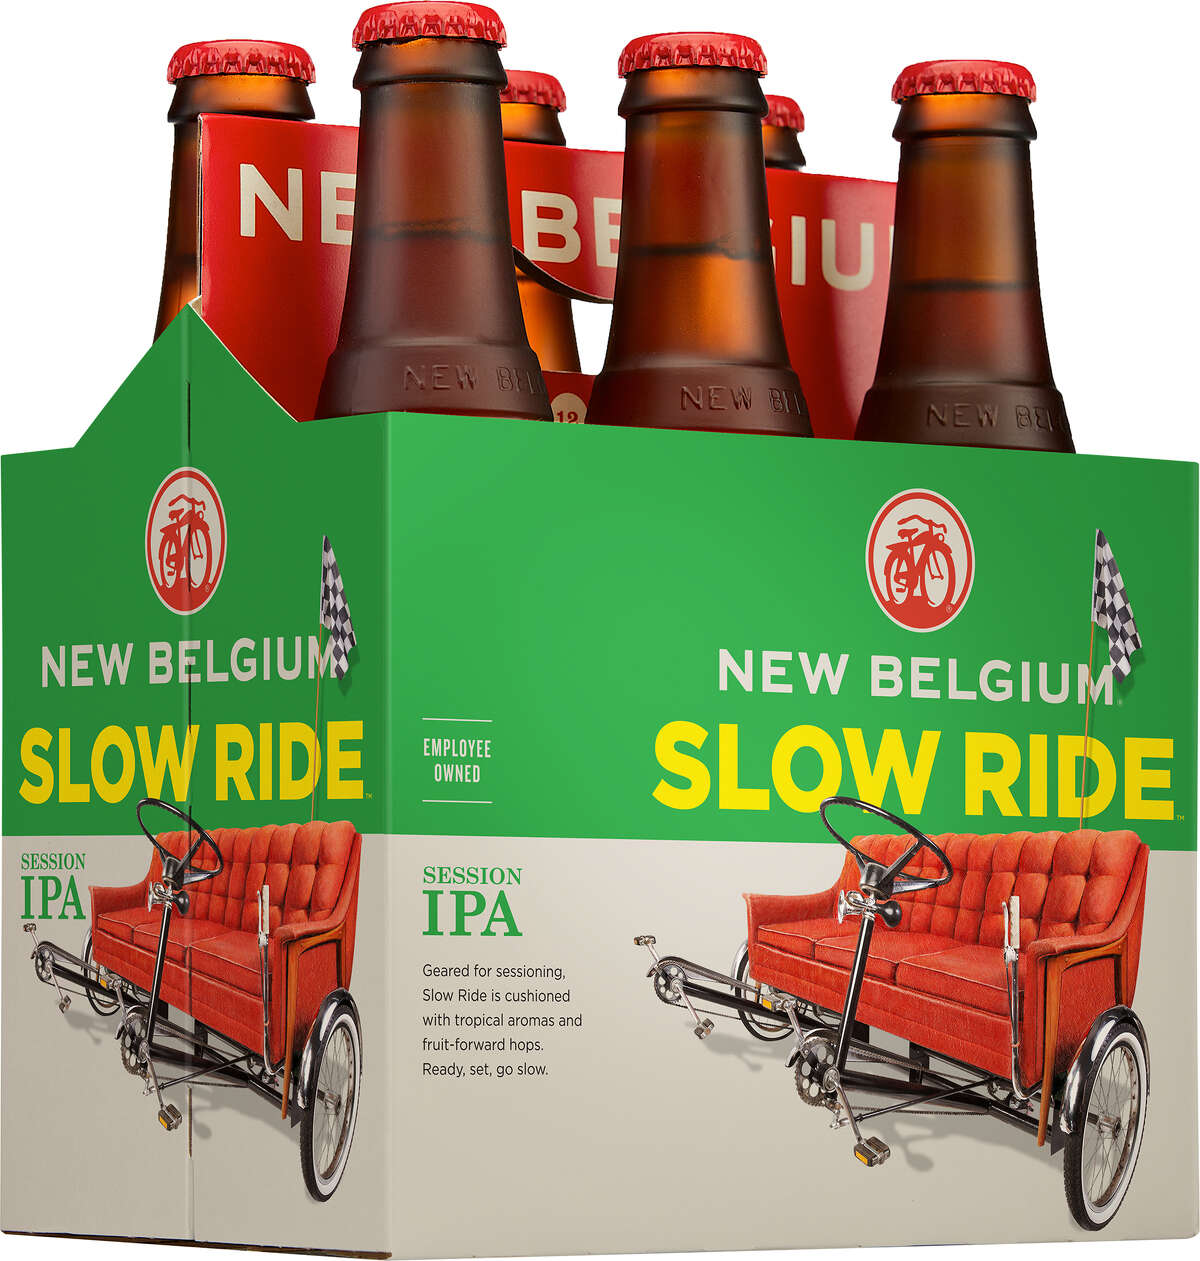 New Belgium Brewing Co. is rolling out a new beer called Slow Ride Session IPA, but initially not in Texas, where an in-state brewery is already using the name.